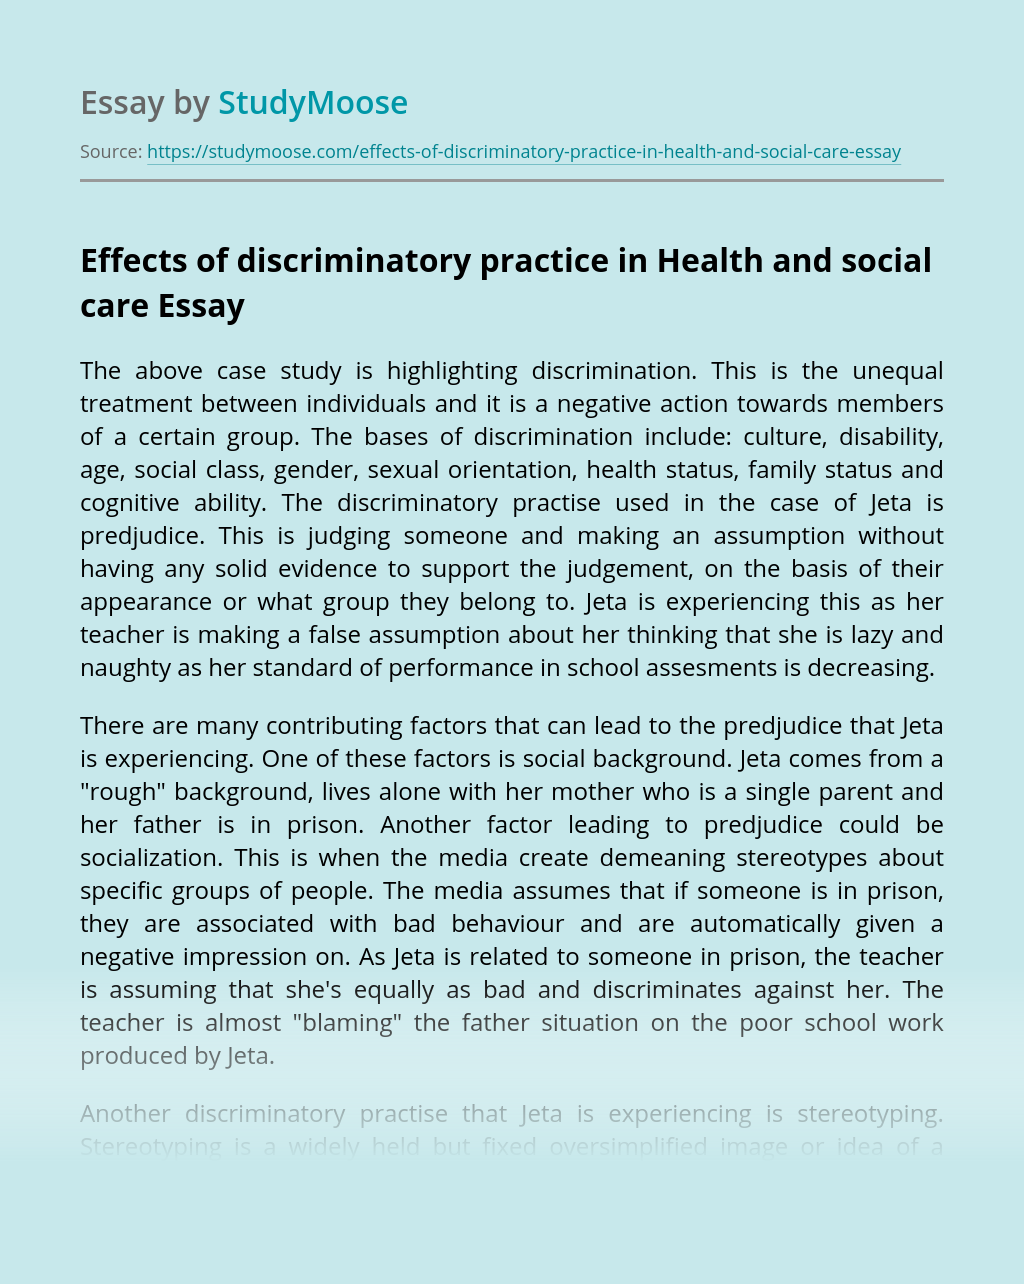 Effects of discriminatory practice in Health and social care